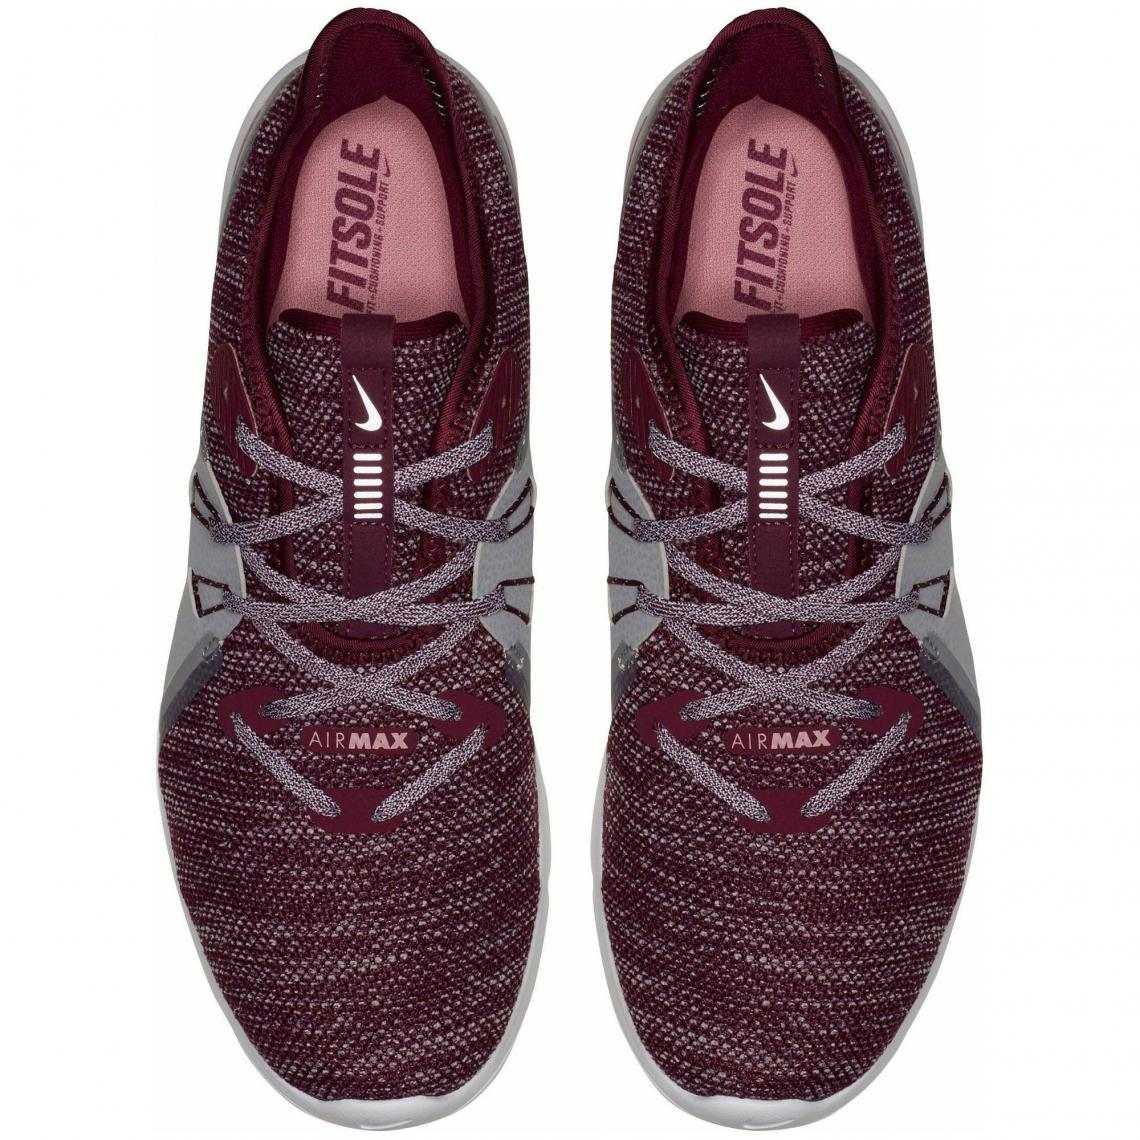 Nike De Running Air Femme Max 3suisses Sequent Chaussures 3 Bordeaux Uvtfq7UTxw